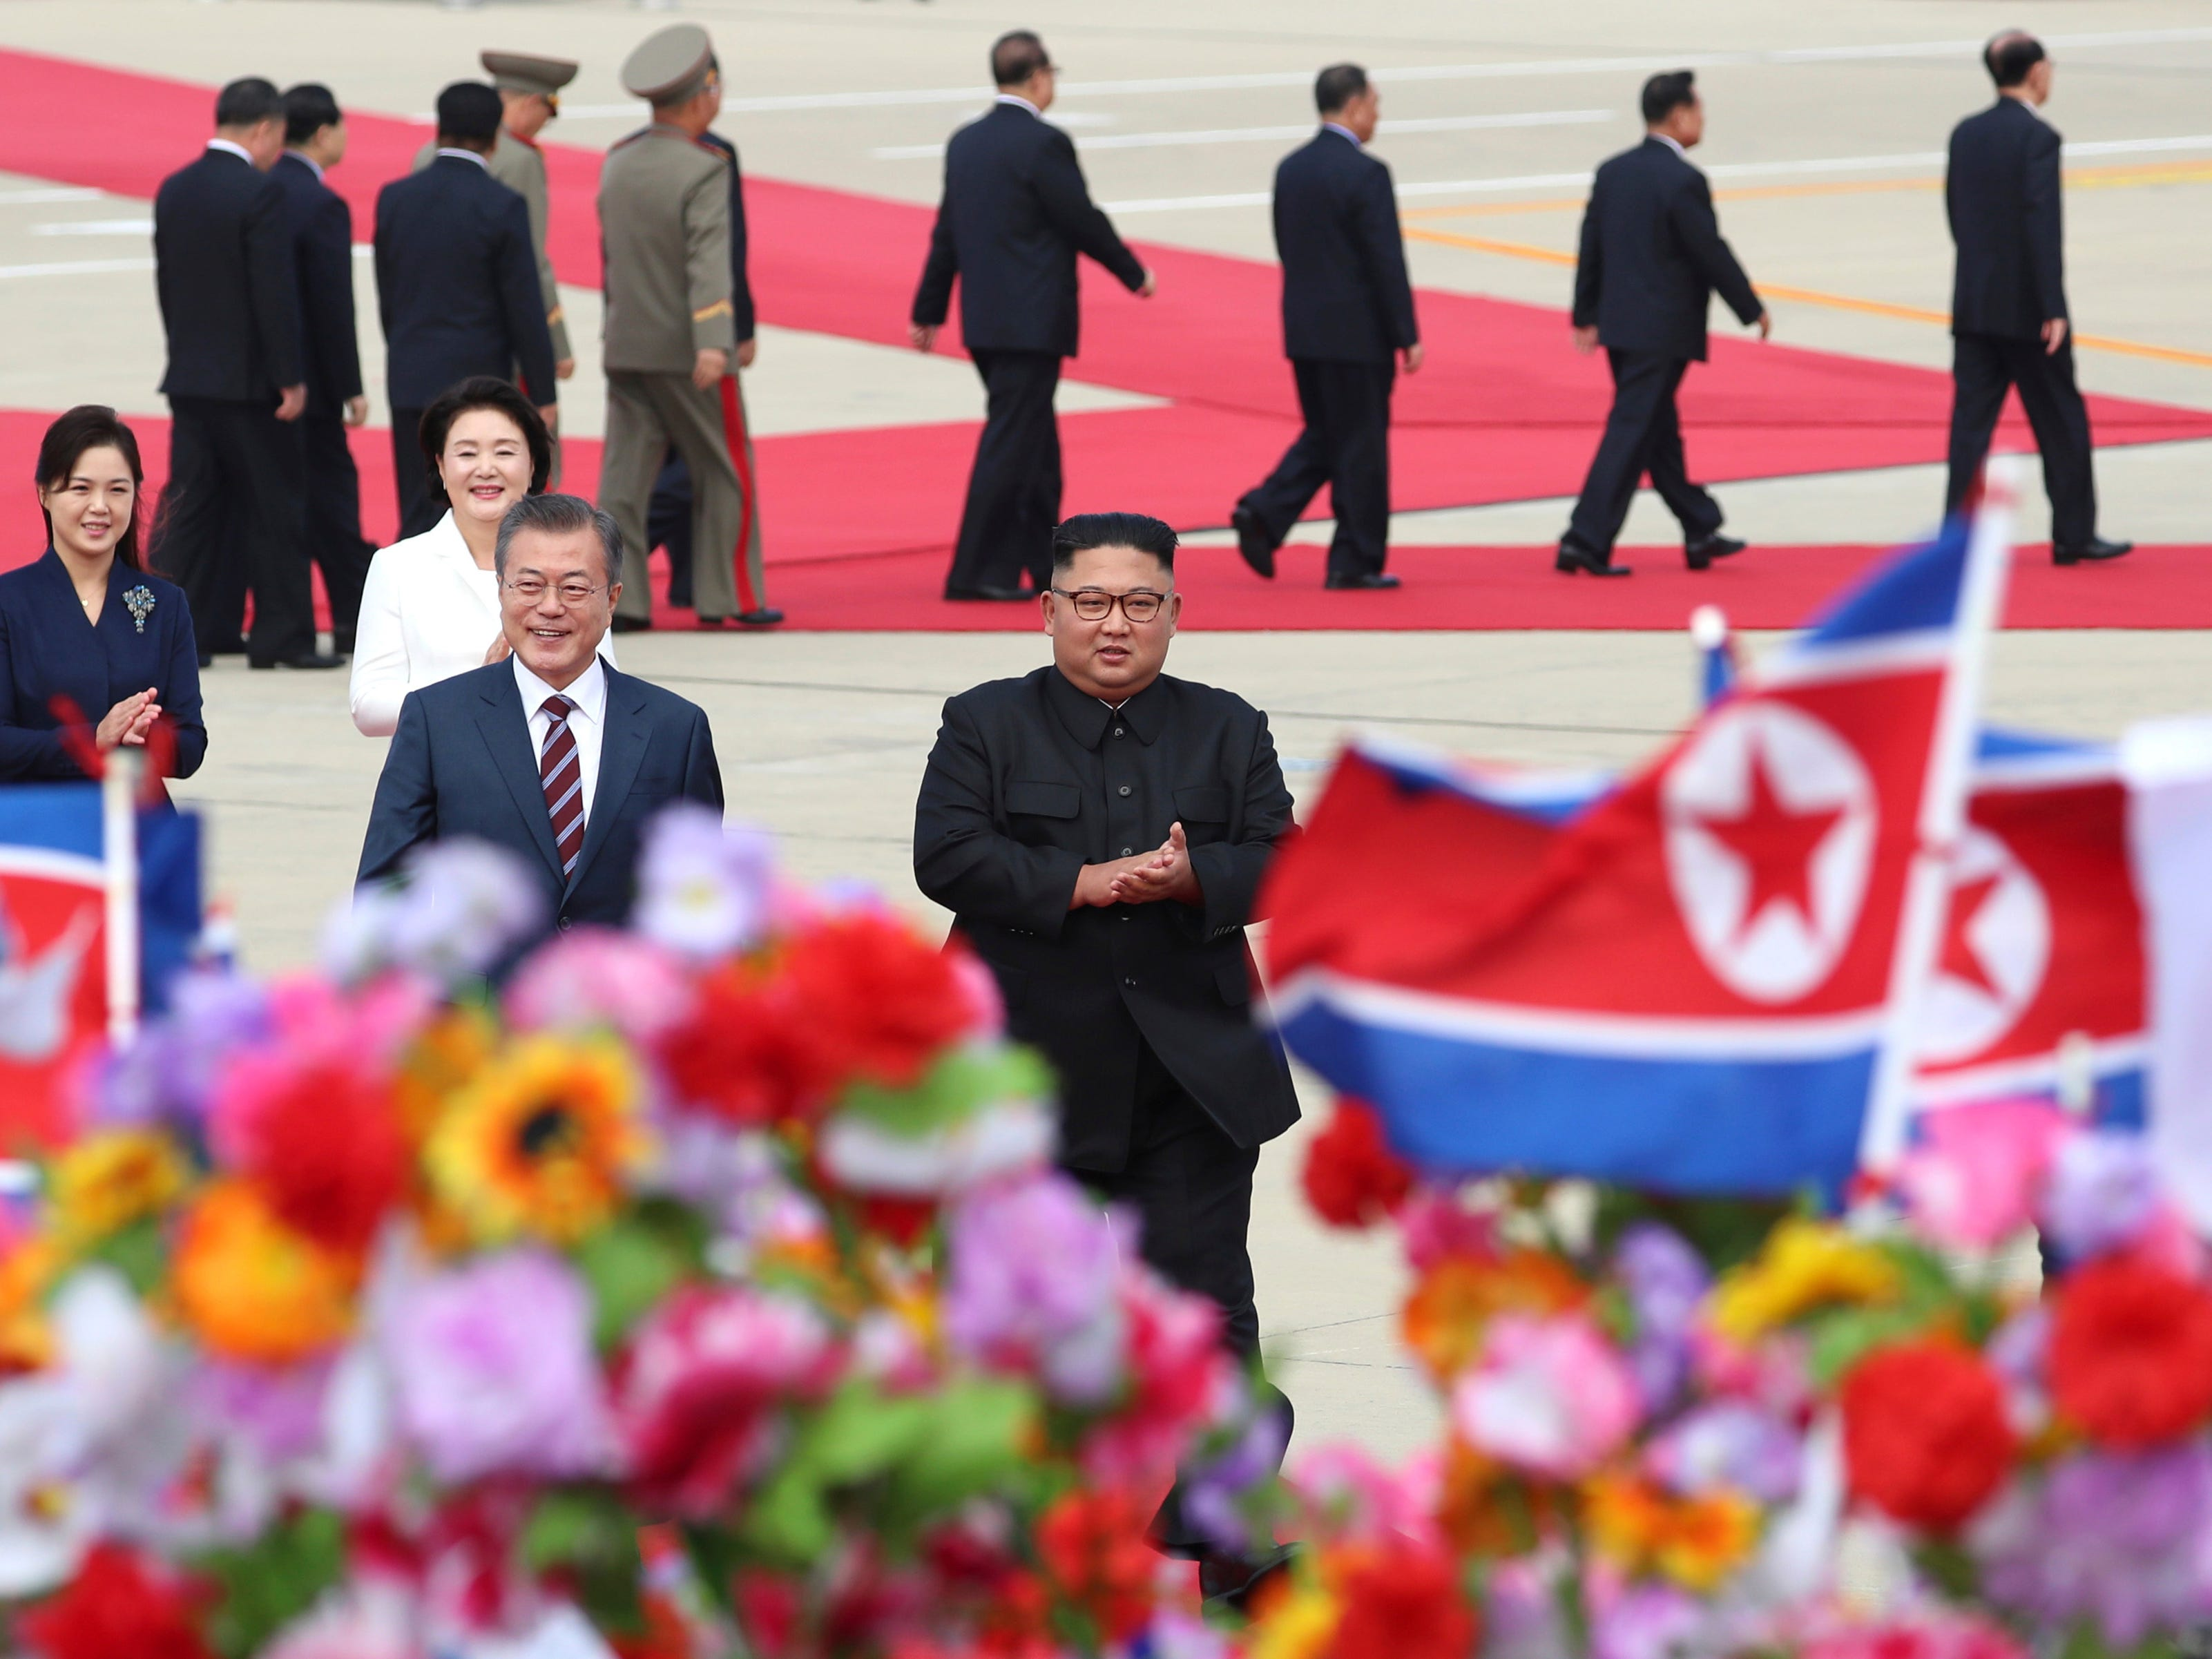 South Korean President Moon Jae-in, front left, walks with North Korean leader Kim Jong Un, front right, upon Moon's arrival at Sunan International Airport in Pyongyang, North Korea, Tuesday, Sept. 18, 2018.